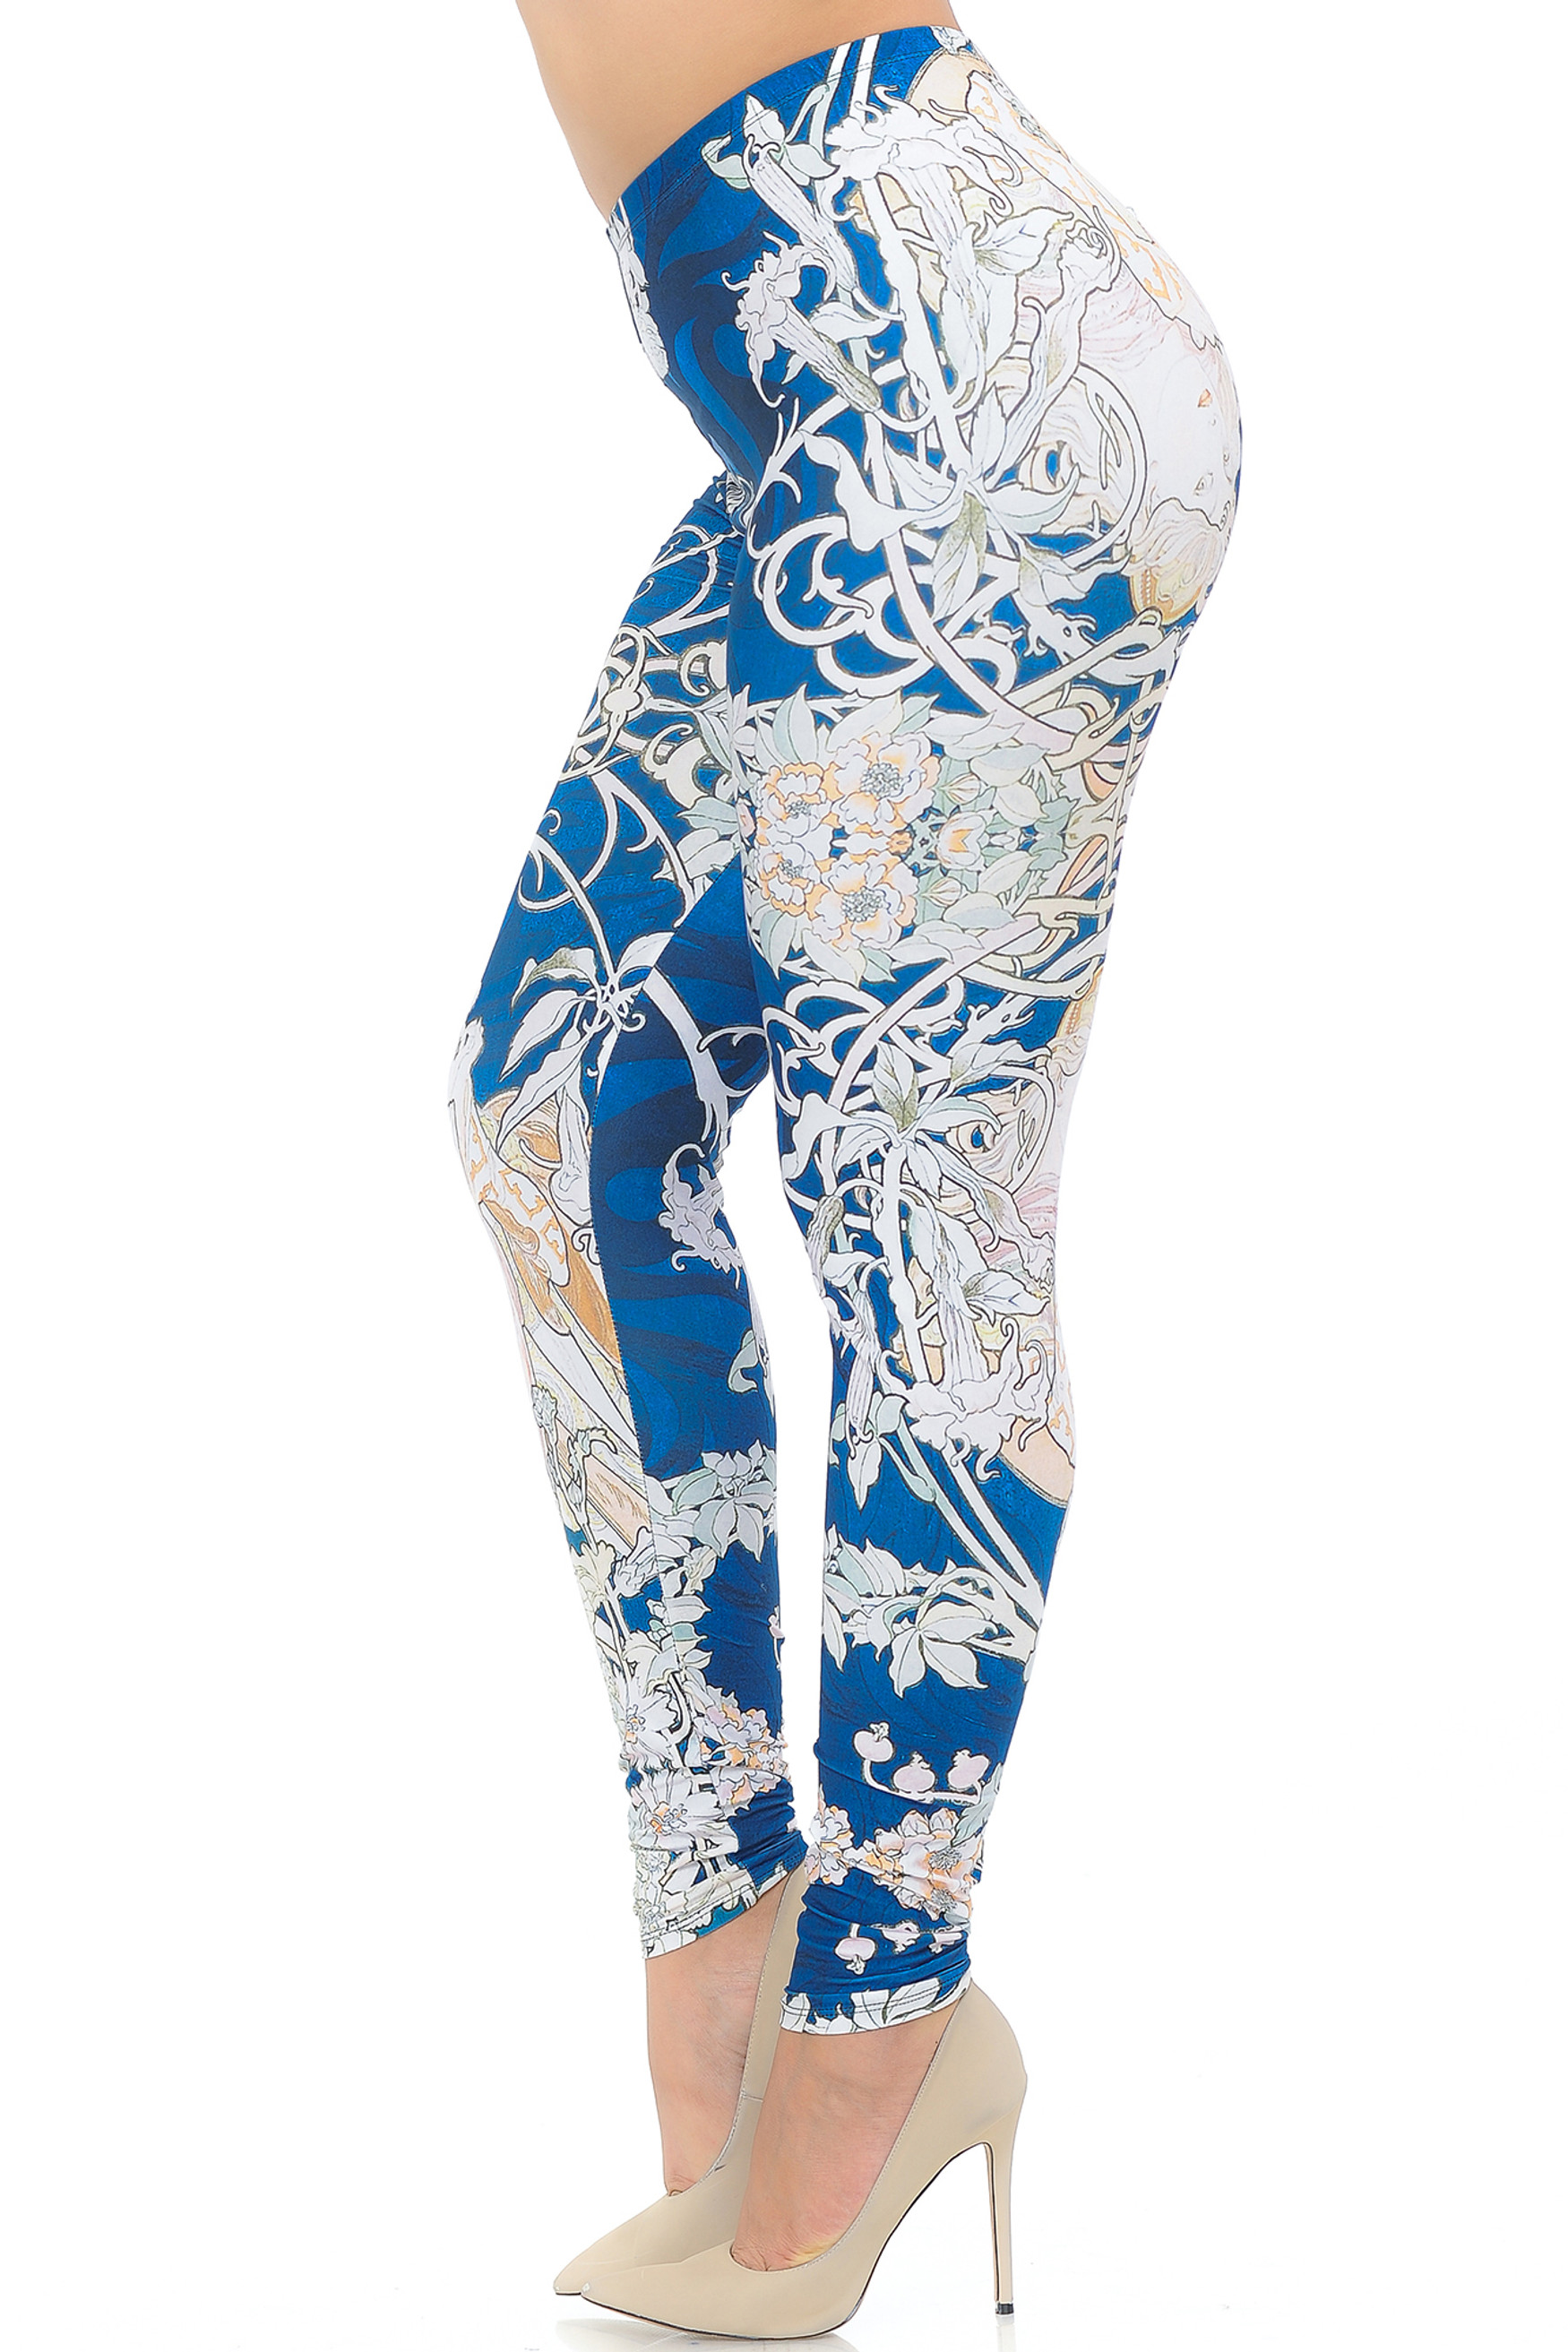 Creamy Soft Twisted Eden Vine Plus Size Leggings - USA Fashion™